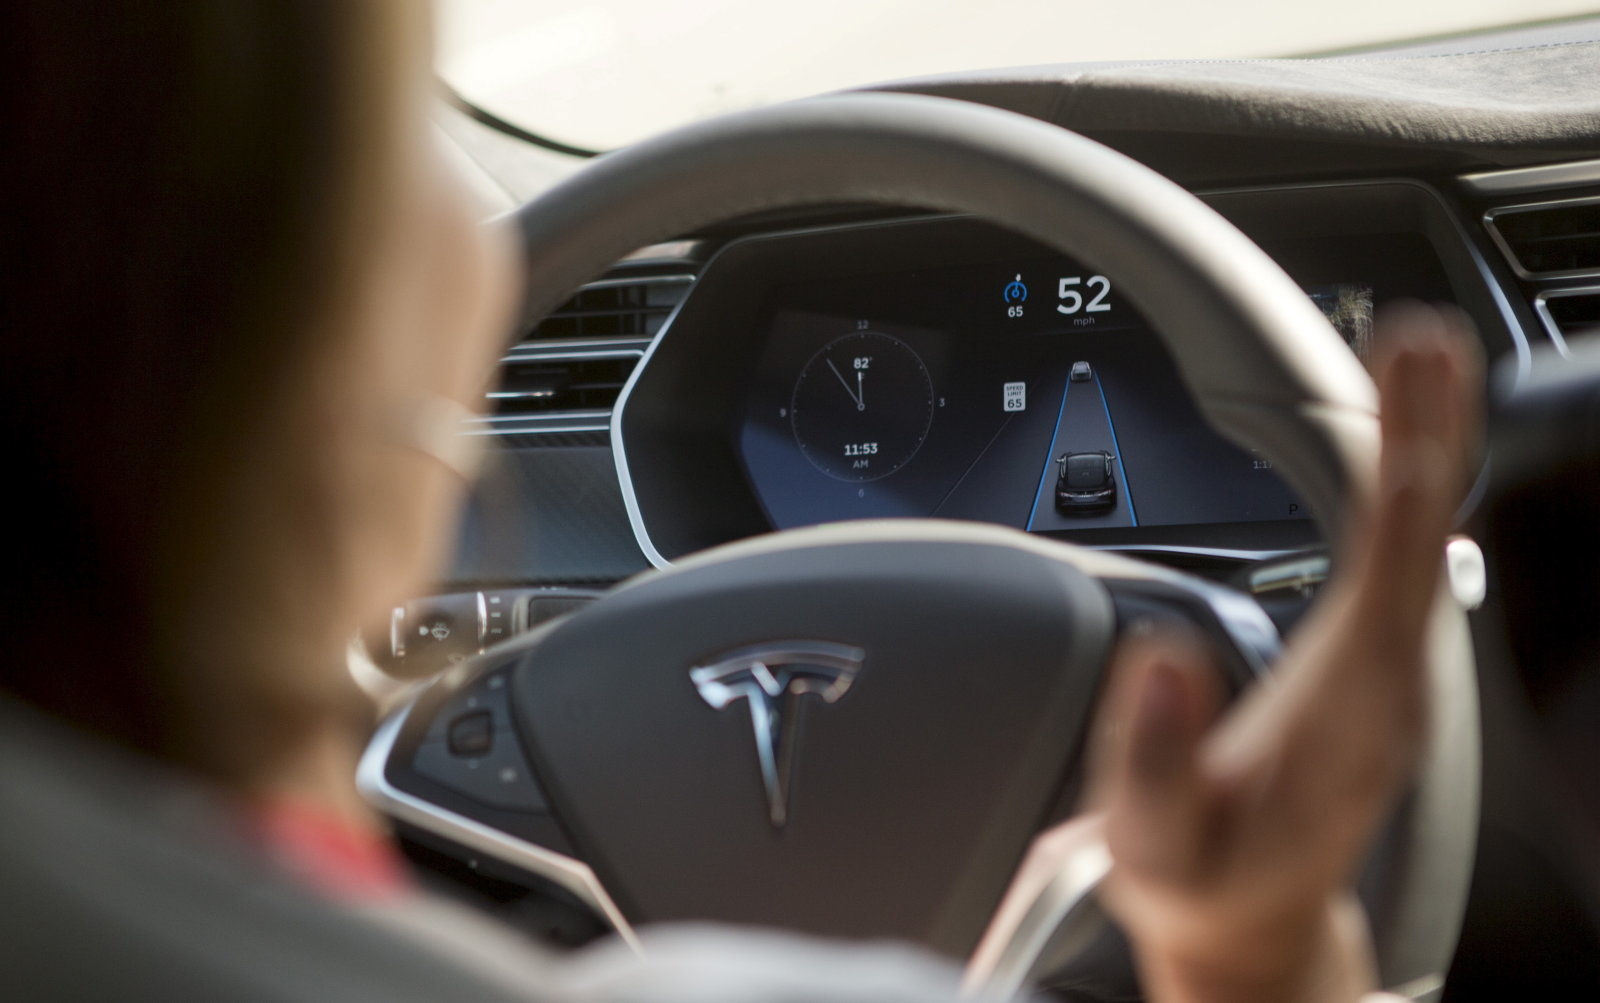 The Tesla Model S version 7.0 software update containing Autopilot features are demonstrated during a Tesla event in Palo Alto, California October 14, 2015. REUTERS/Beck Diefenbach